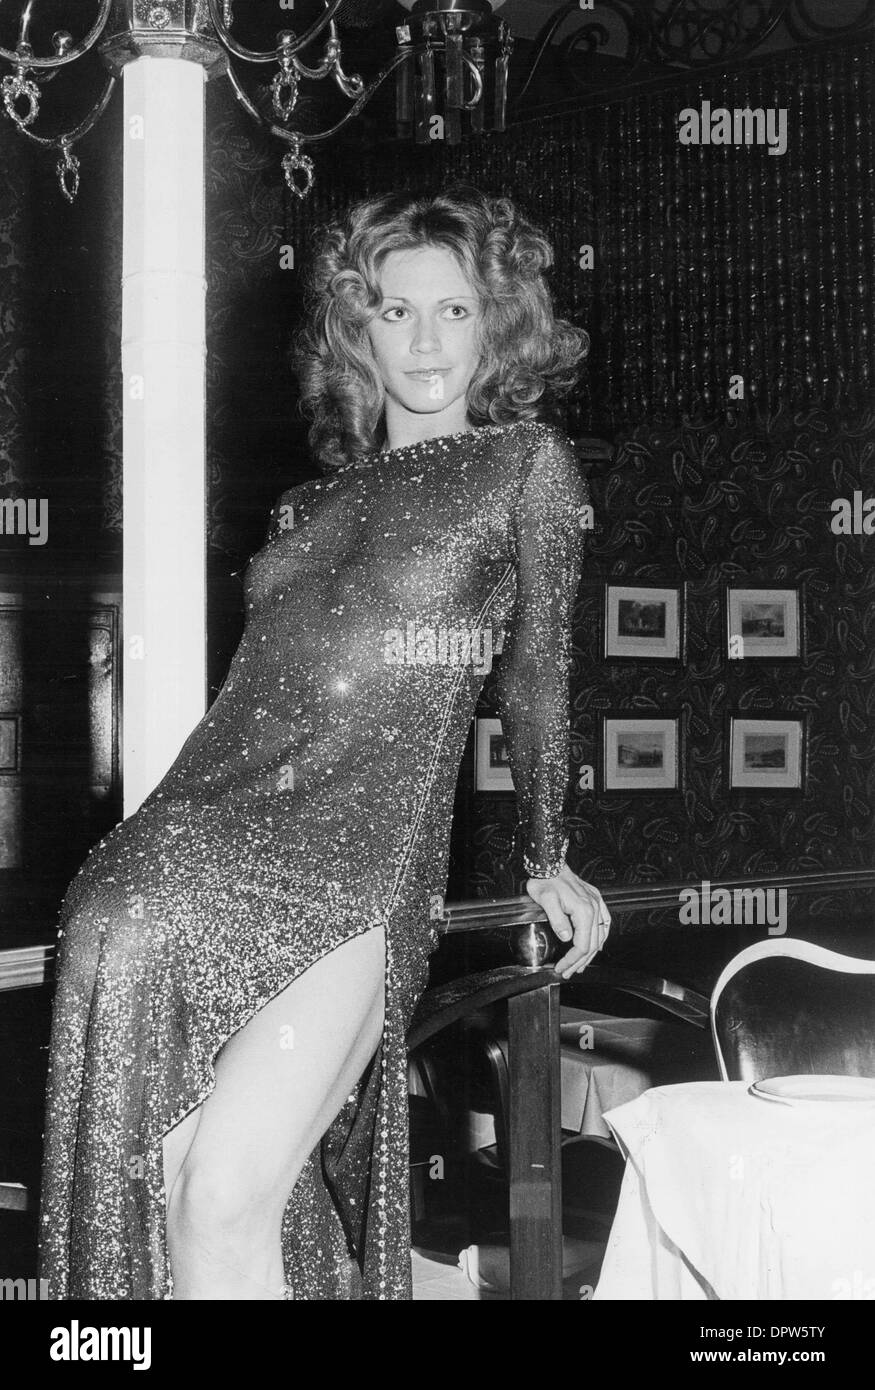 Young marilyn chambers pics apologise, but